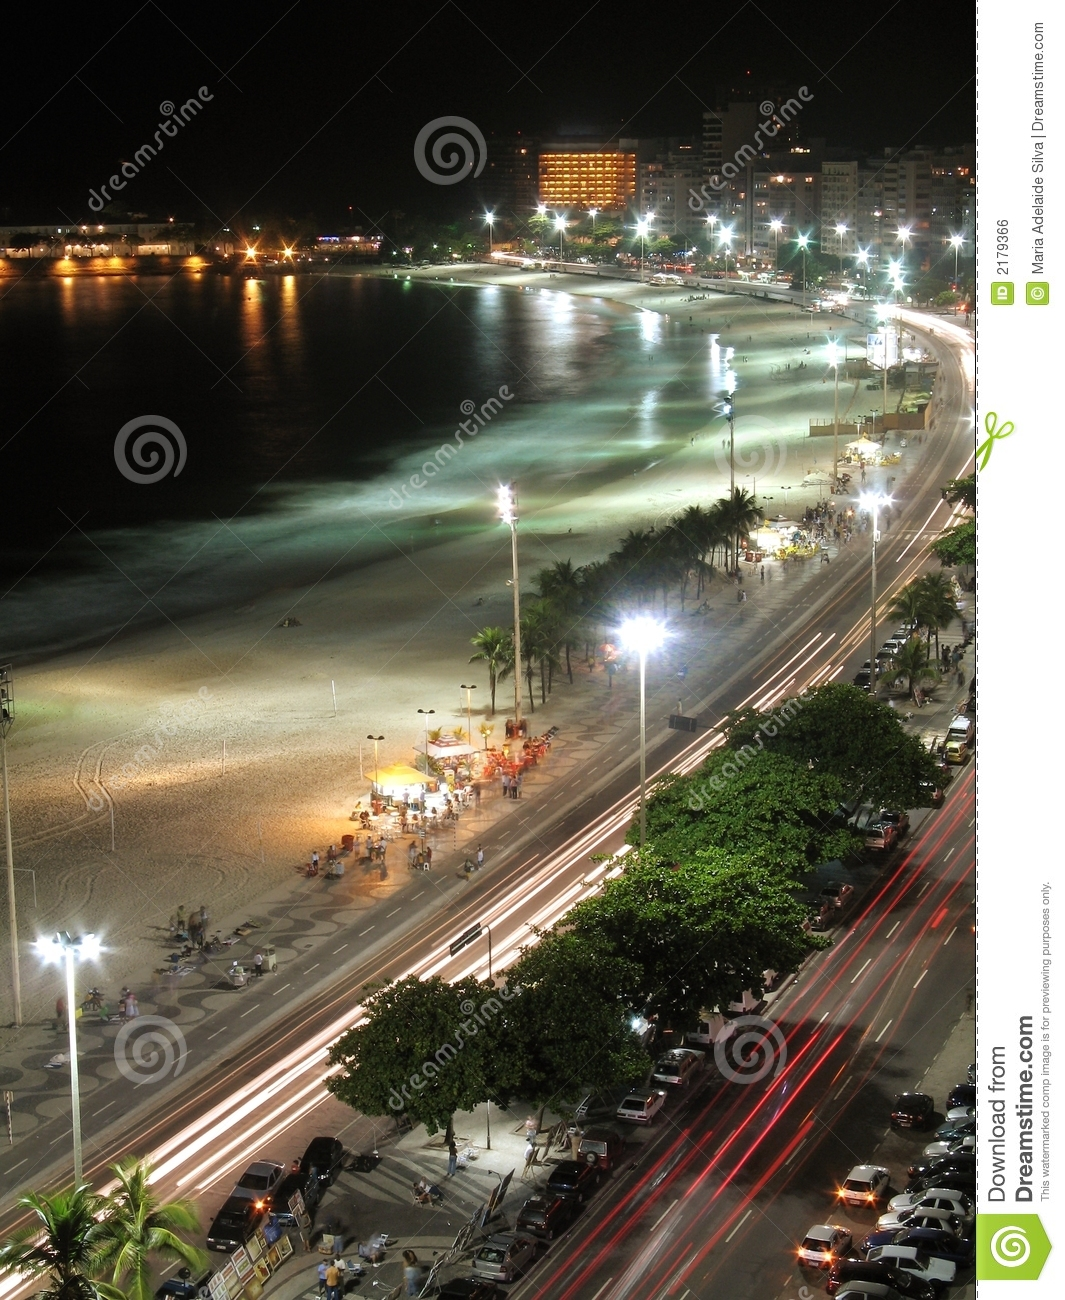 Copacabana de Night - 2